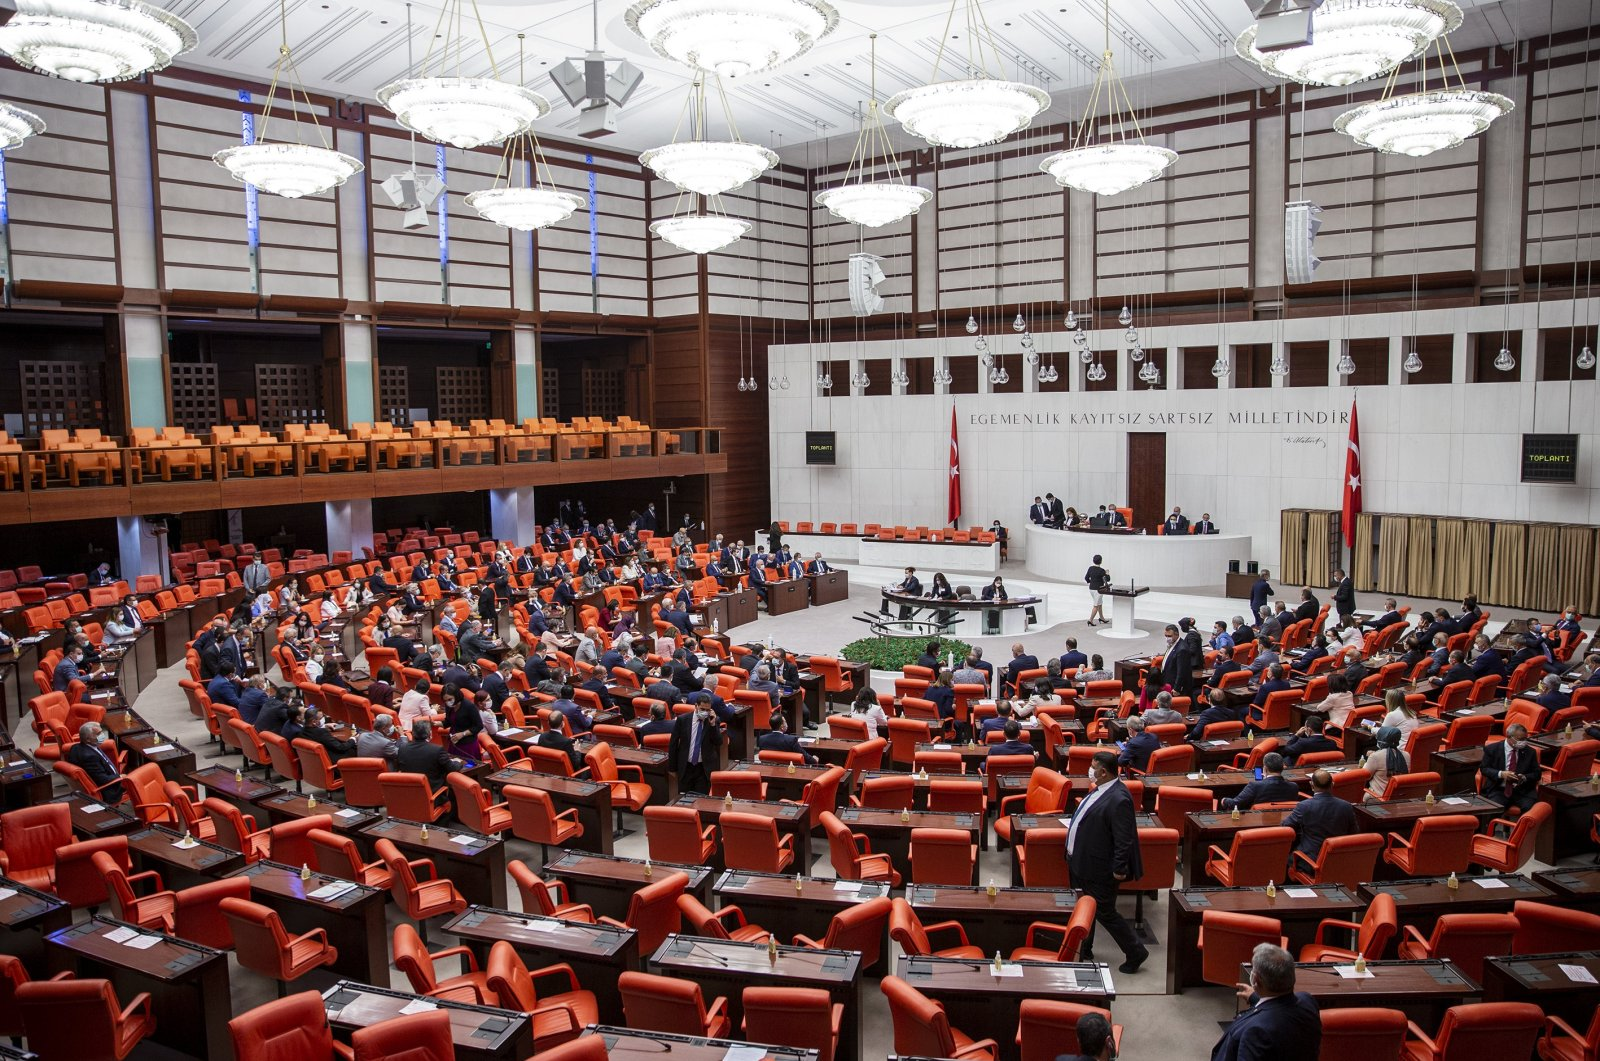 Turkish lawmakers assemble at the Turkish Parliament in the capital Ankara, June 8, 2020. (AA Photo)